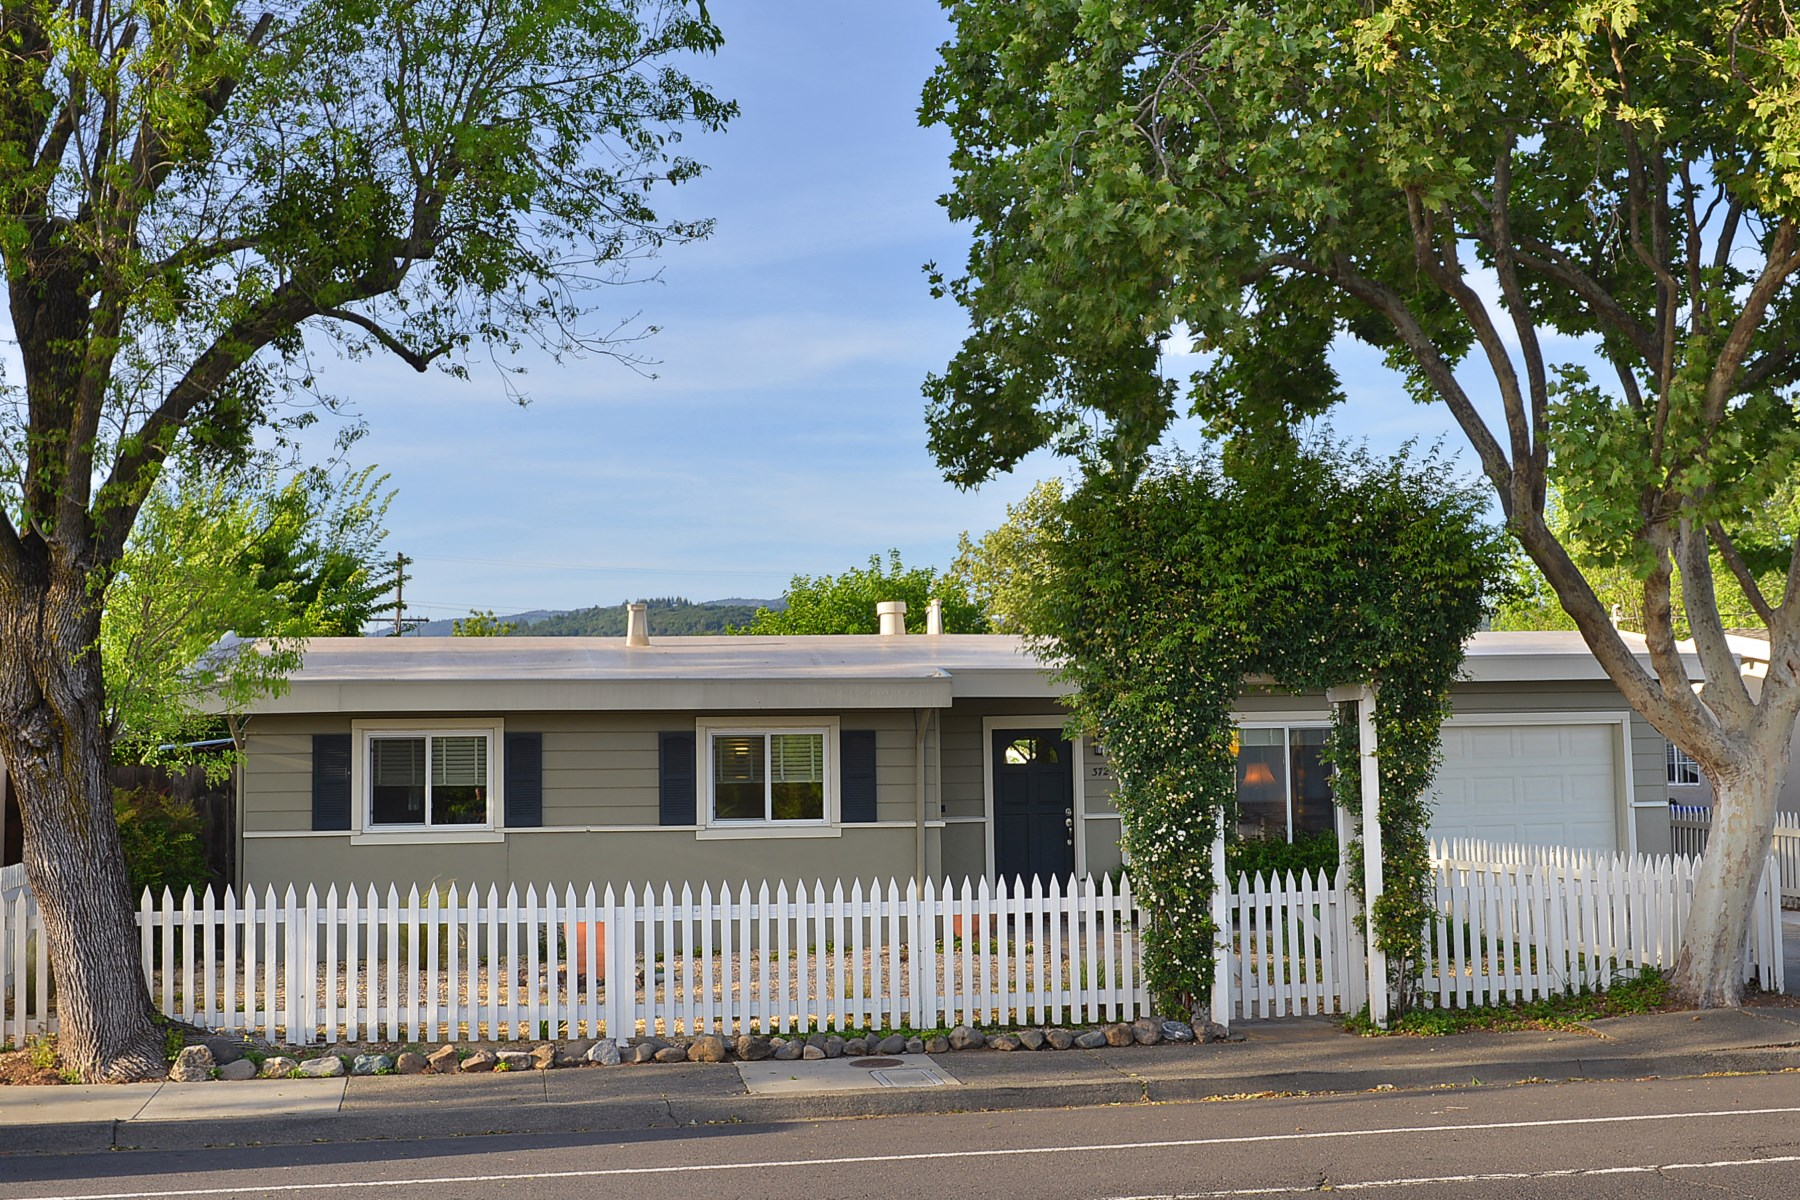 Single Family Home for Sale at Charming Sonoma Bungalow 372 W Macarthur St Sonoma, California, 95476 United States